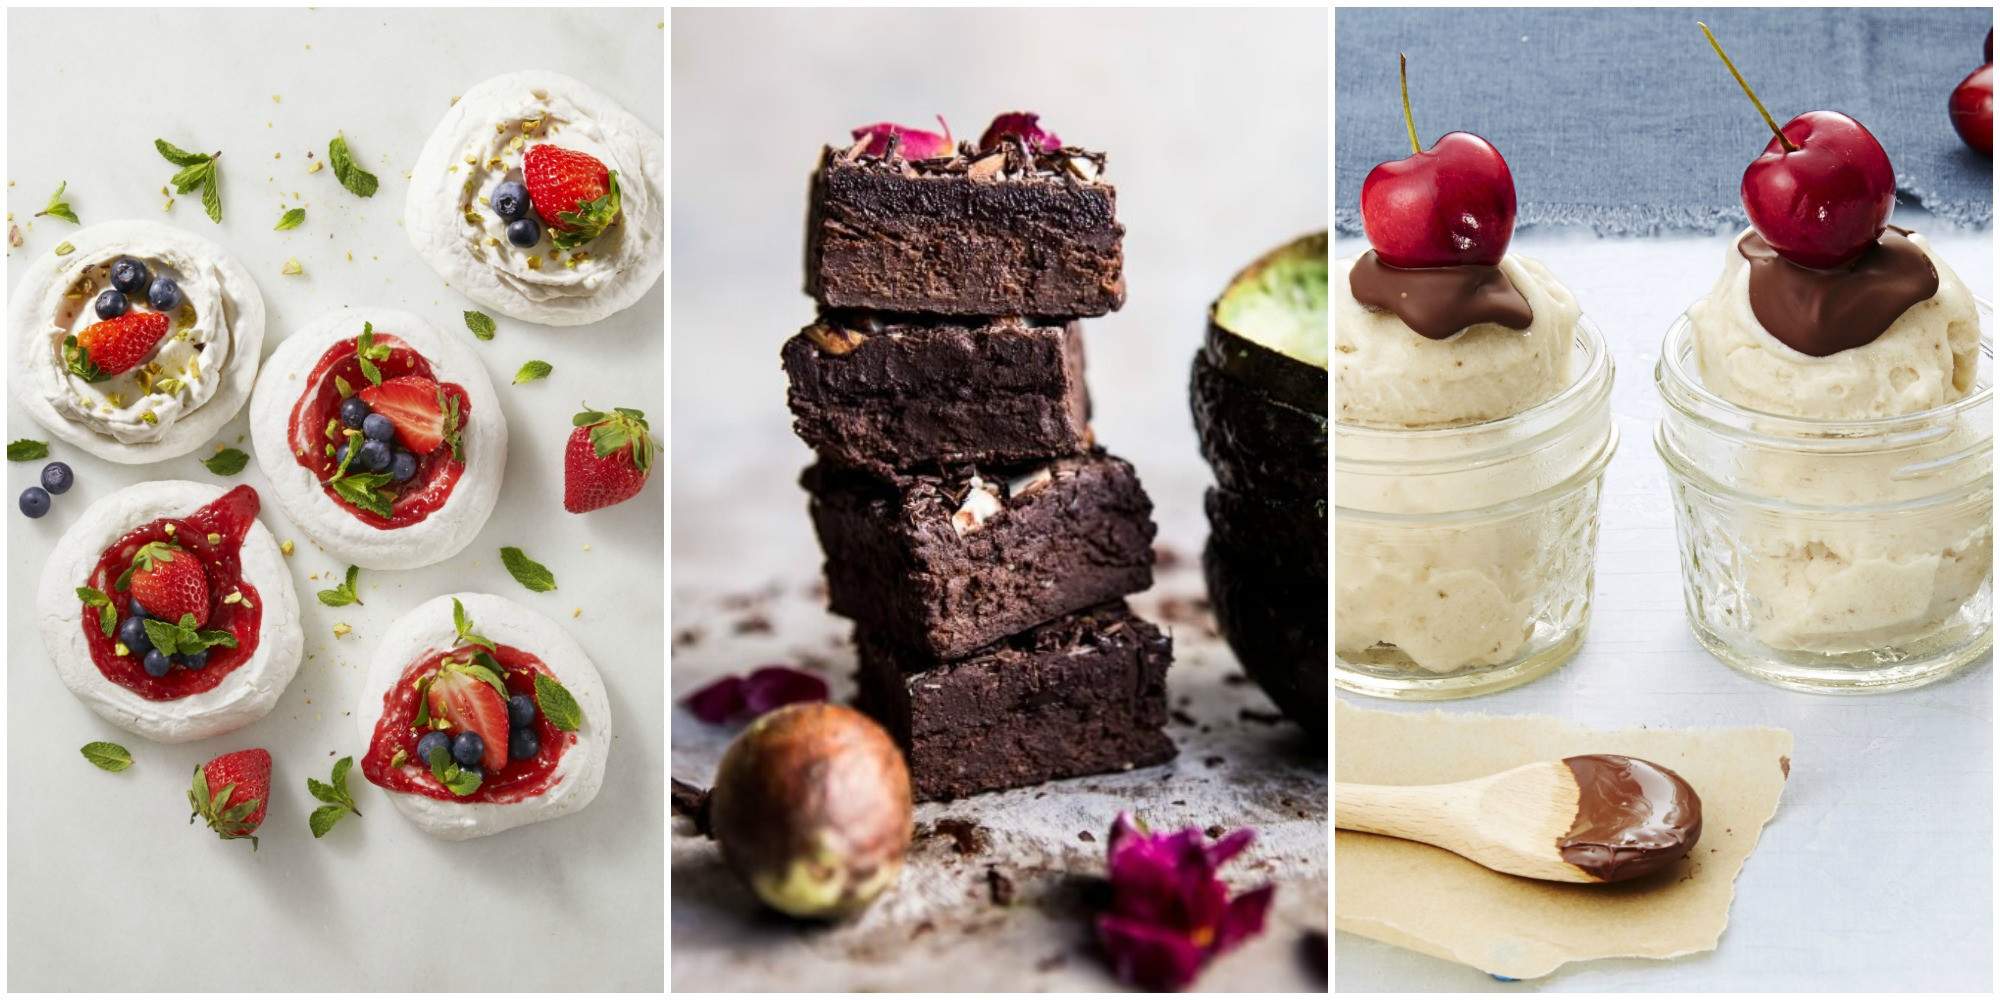 Quick And Easy Healthy Desserts  15 Best Healthy Dessert Recipes Easy Ideas for Low